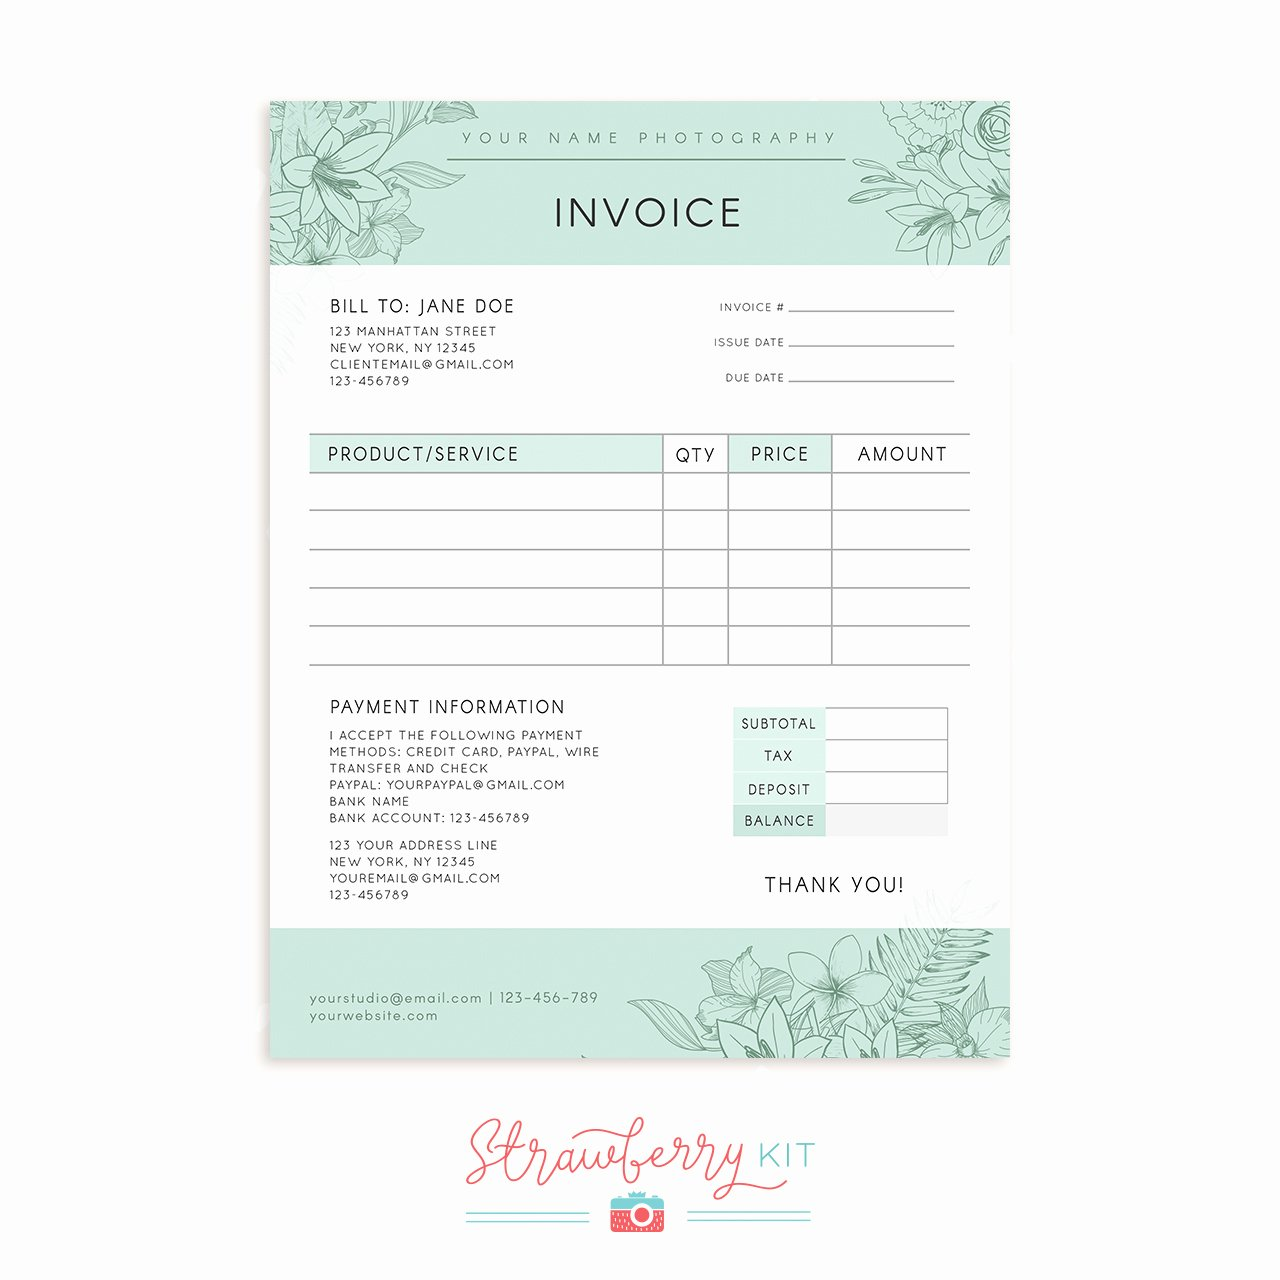 Photography order form Template Free New Floral Graphy Invoice Template Strawberry Kit